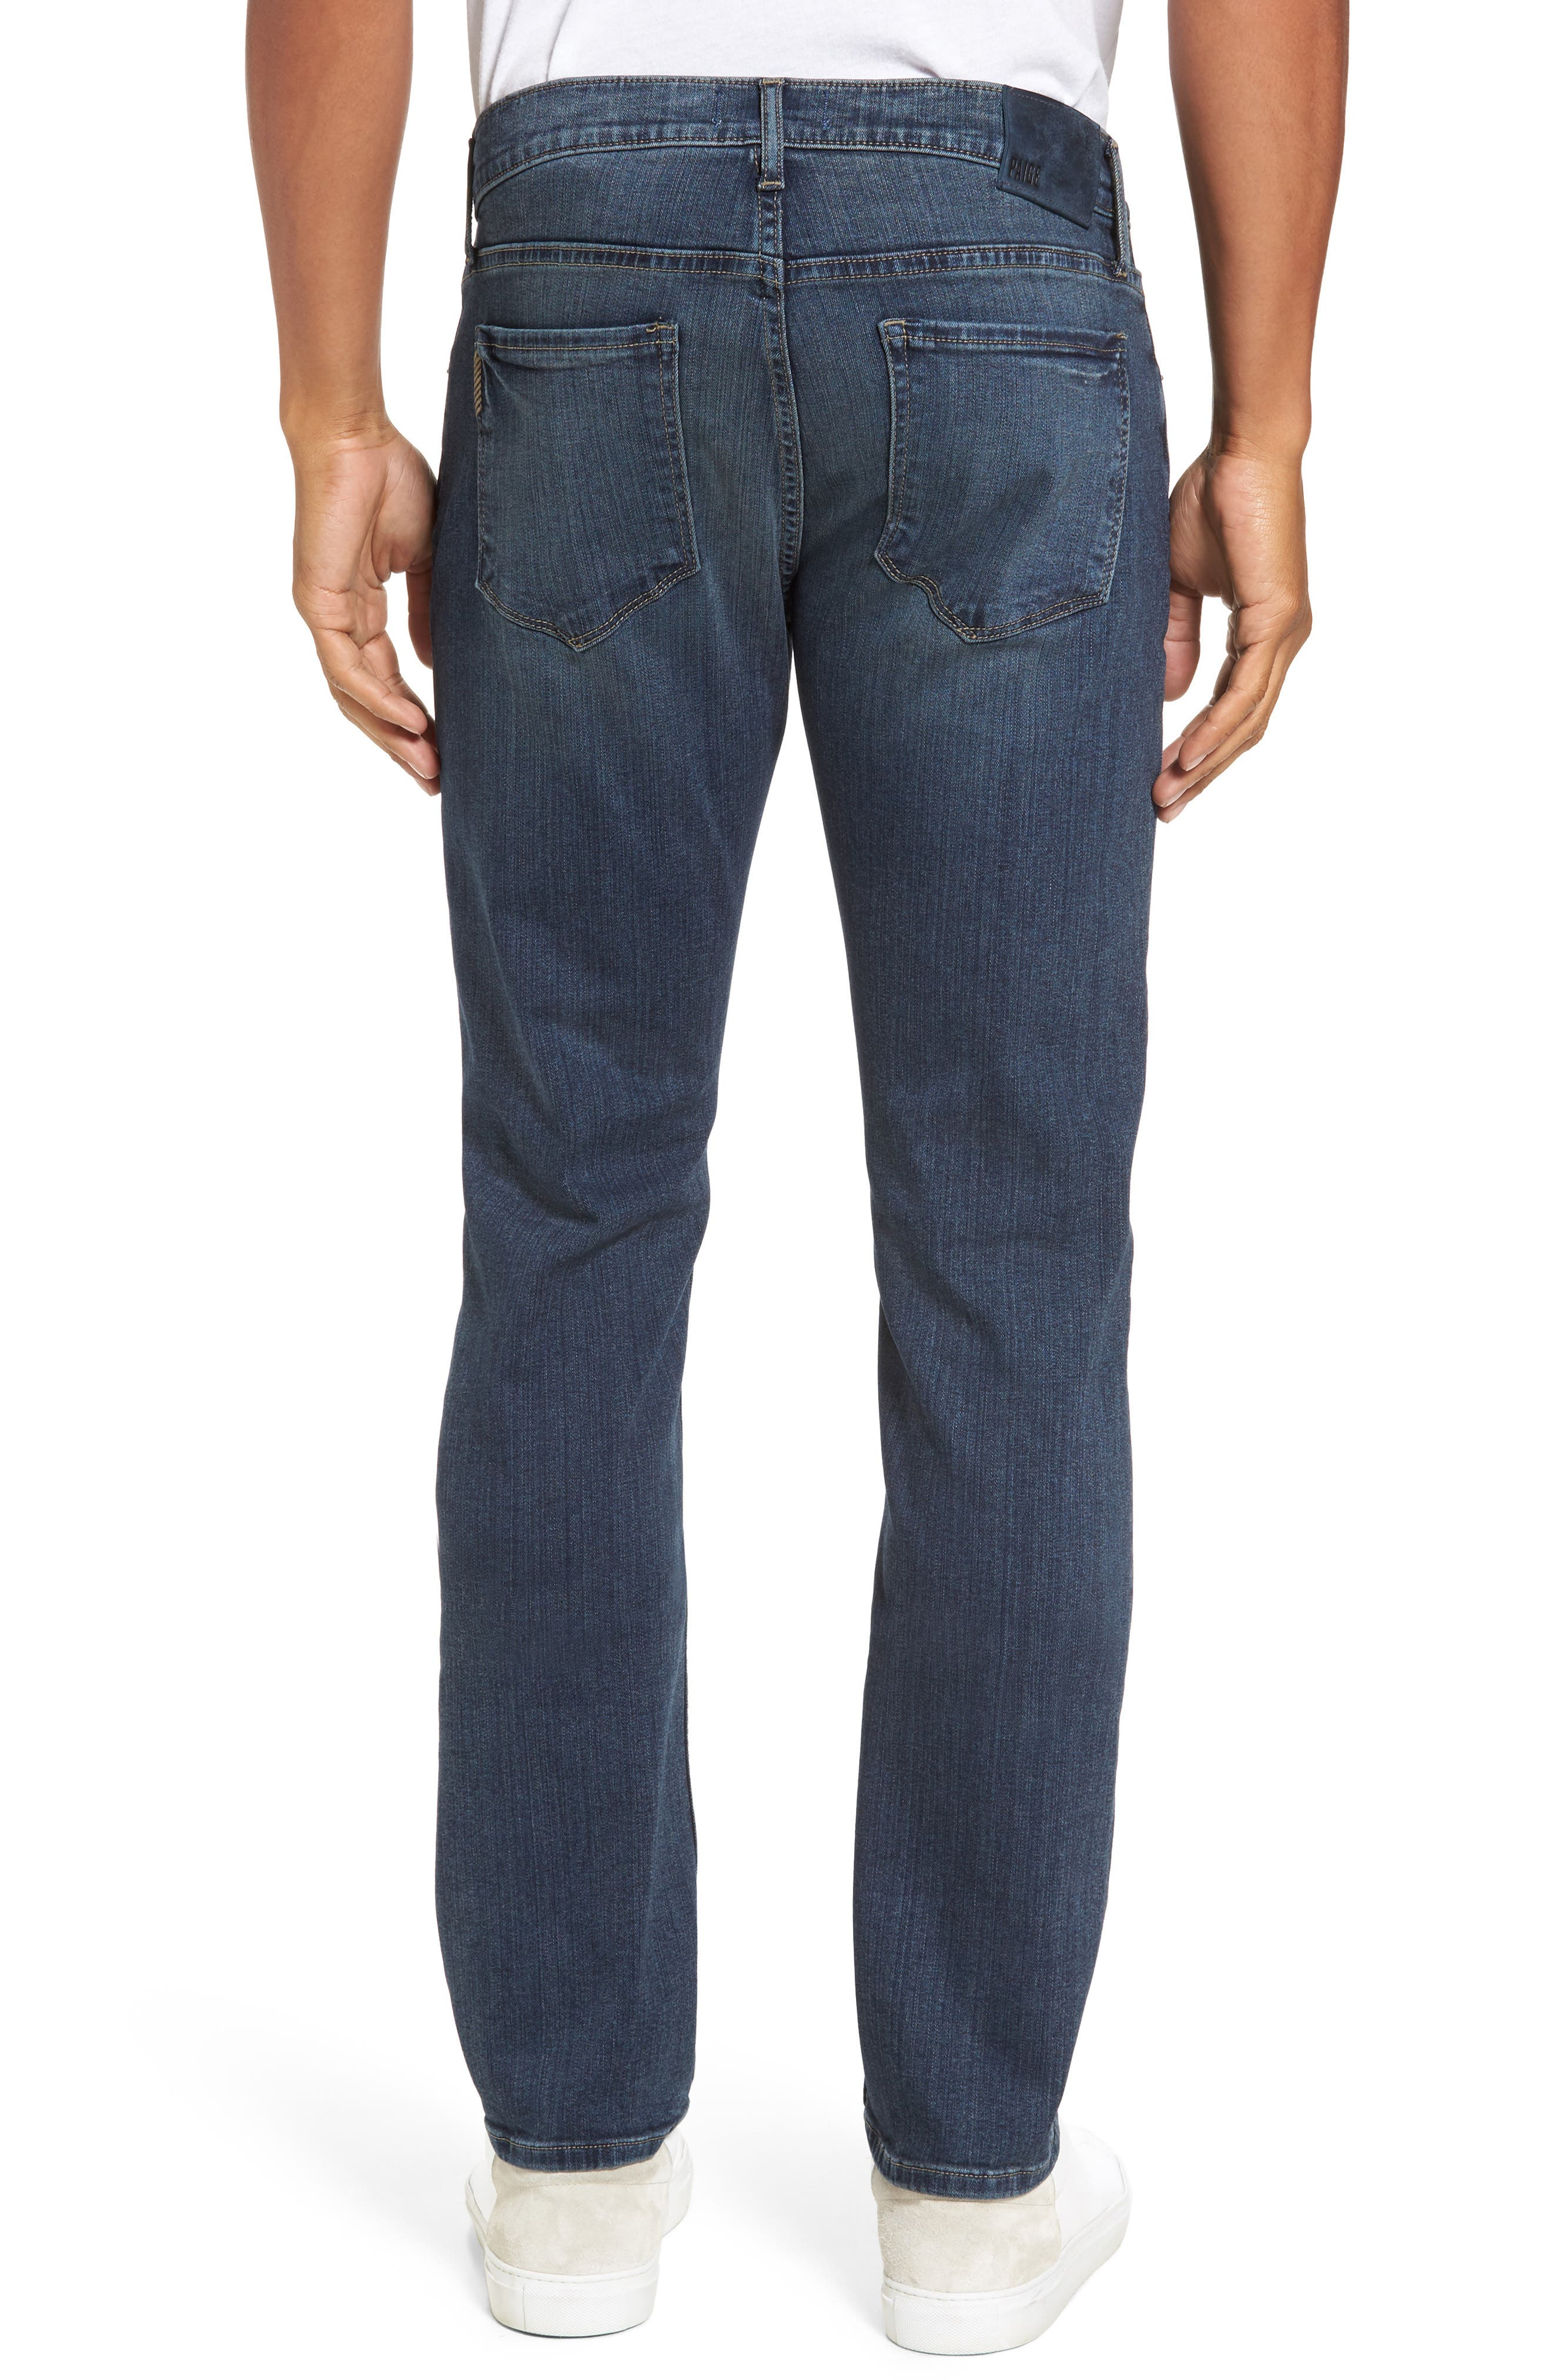 Transcend - Federal Slim Straight Leg Jeans,                             Alternate thumbnail 2, color,                             Briggs